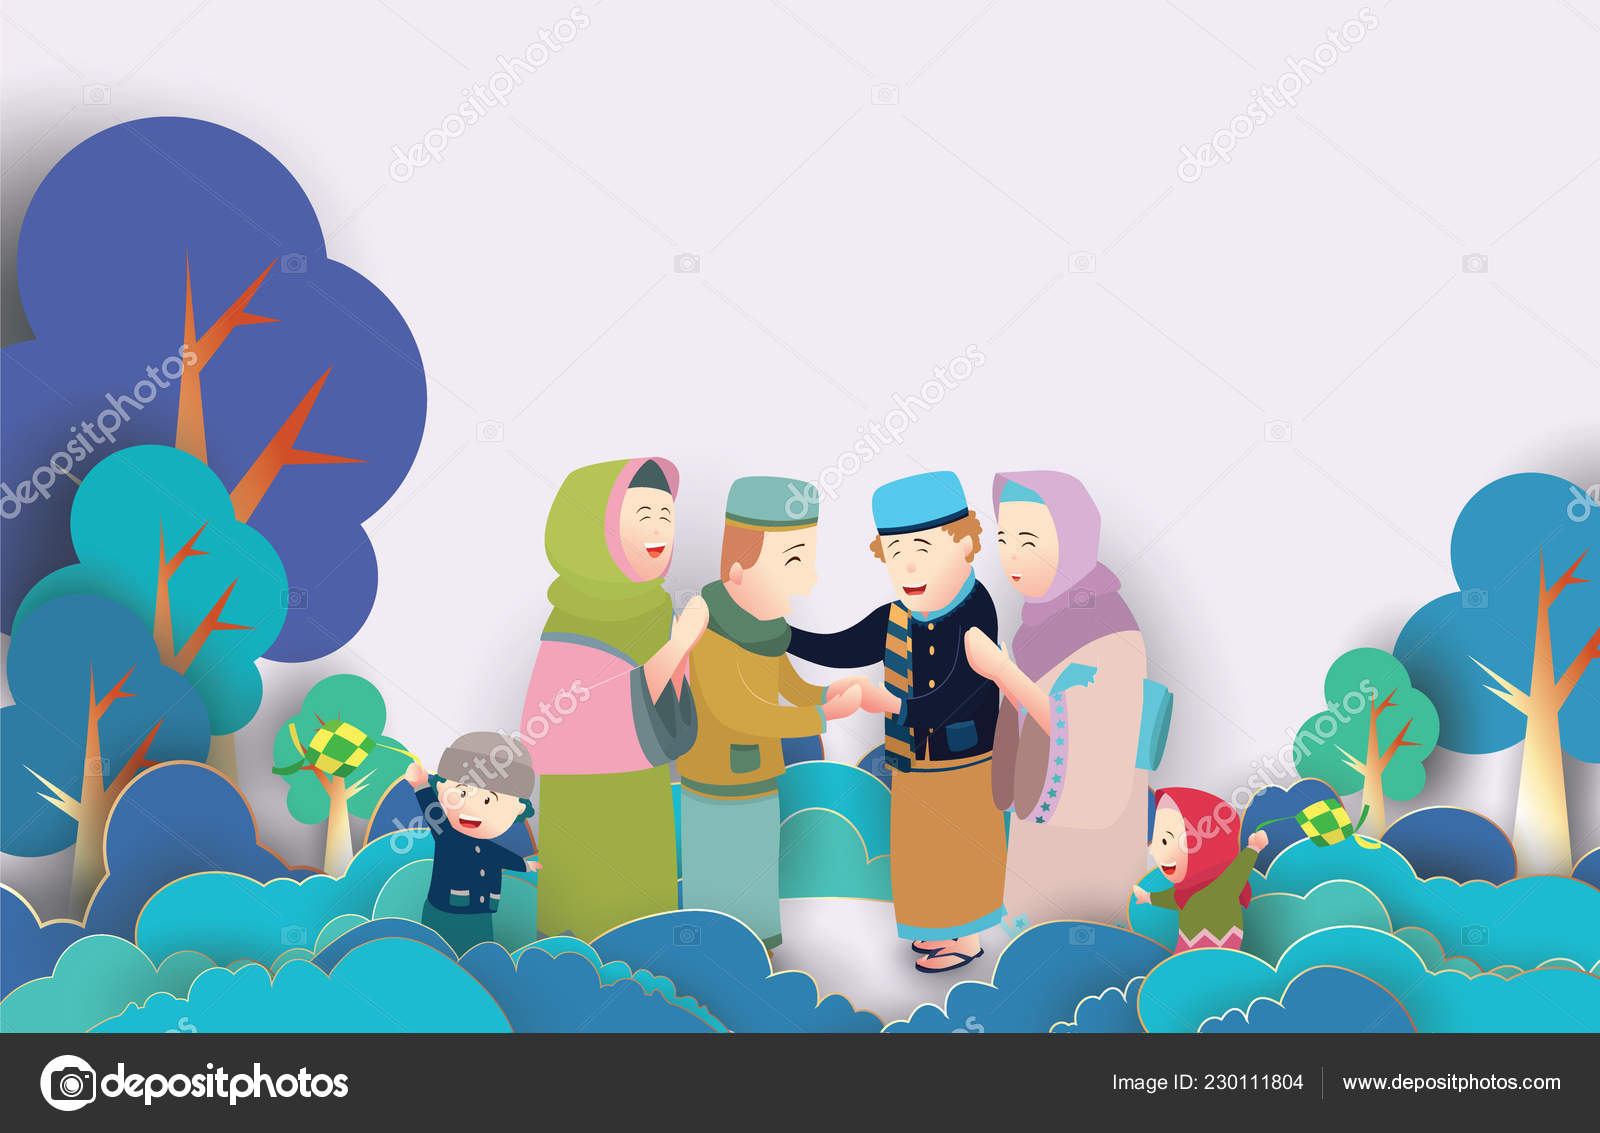 Eid Mubarak Vector Illustration Family Character Vector Illustration Greeting Card Vector Image By C Vavectors Vector Stock 230111804